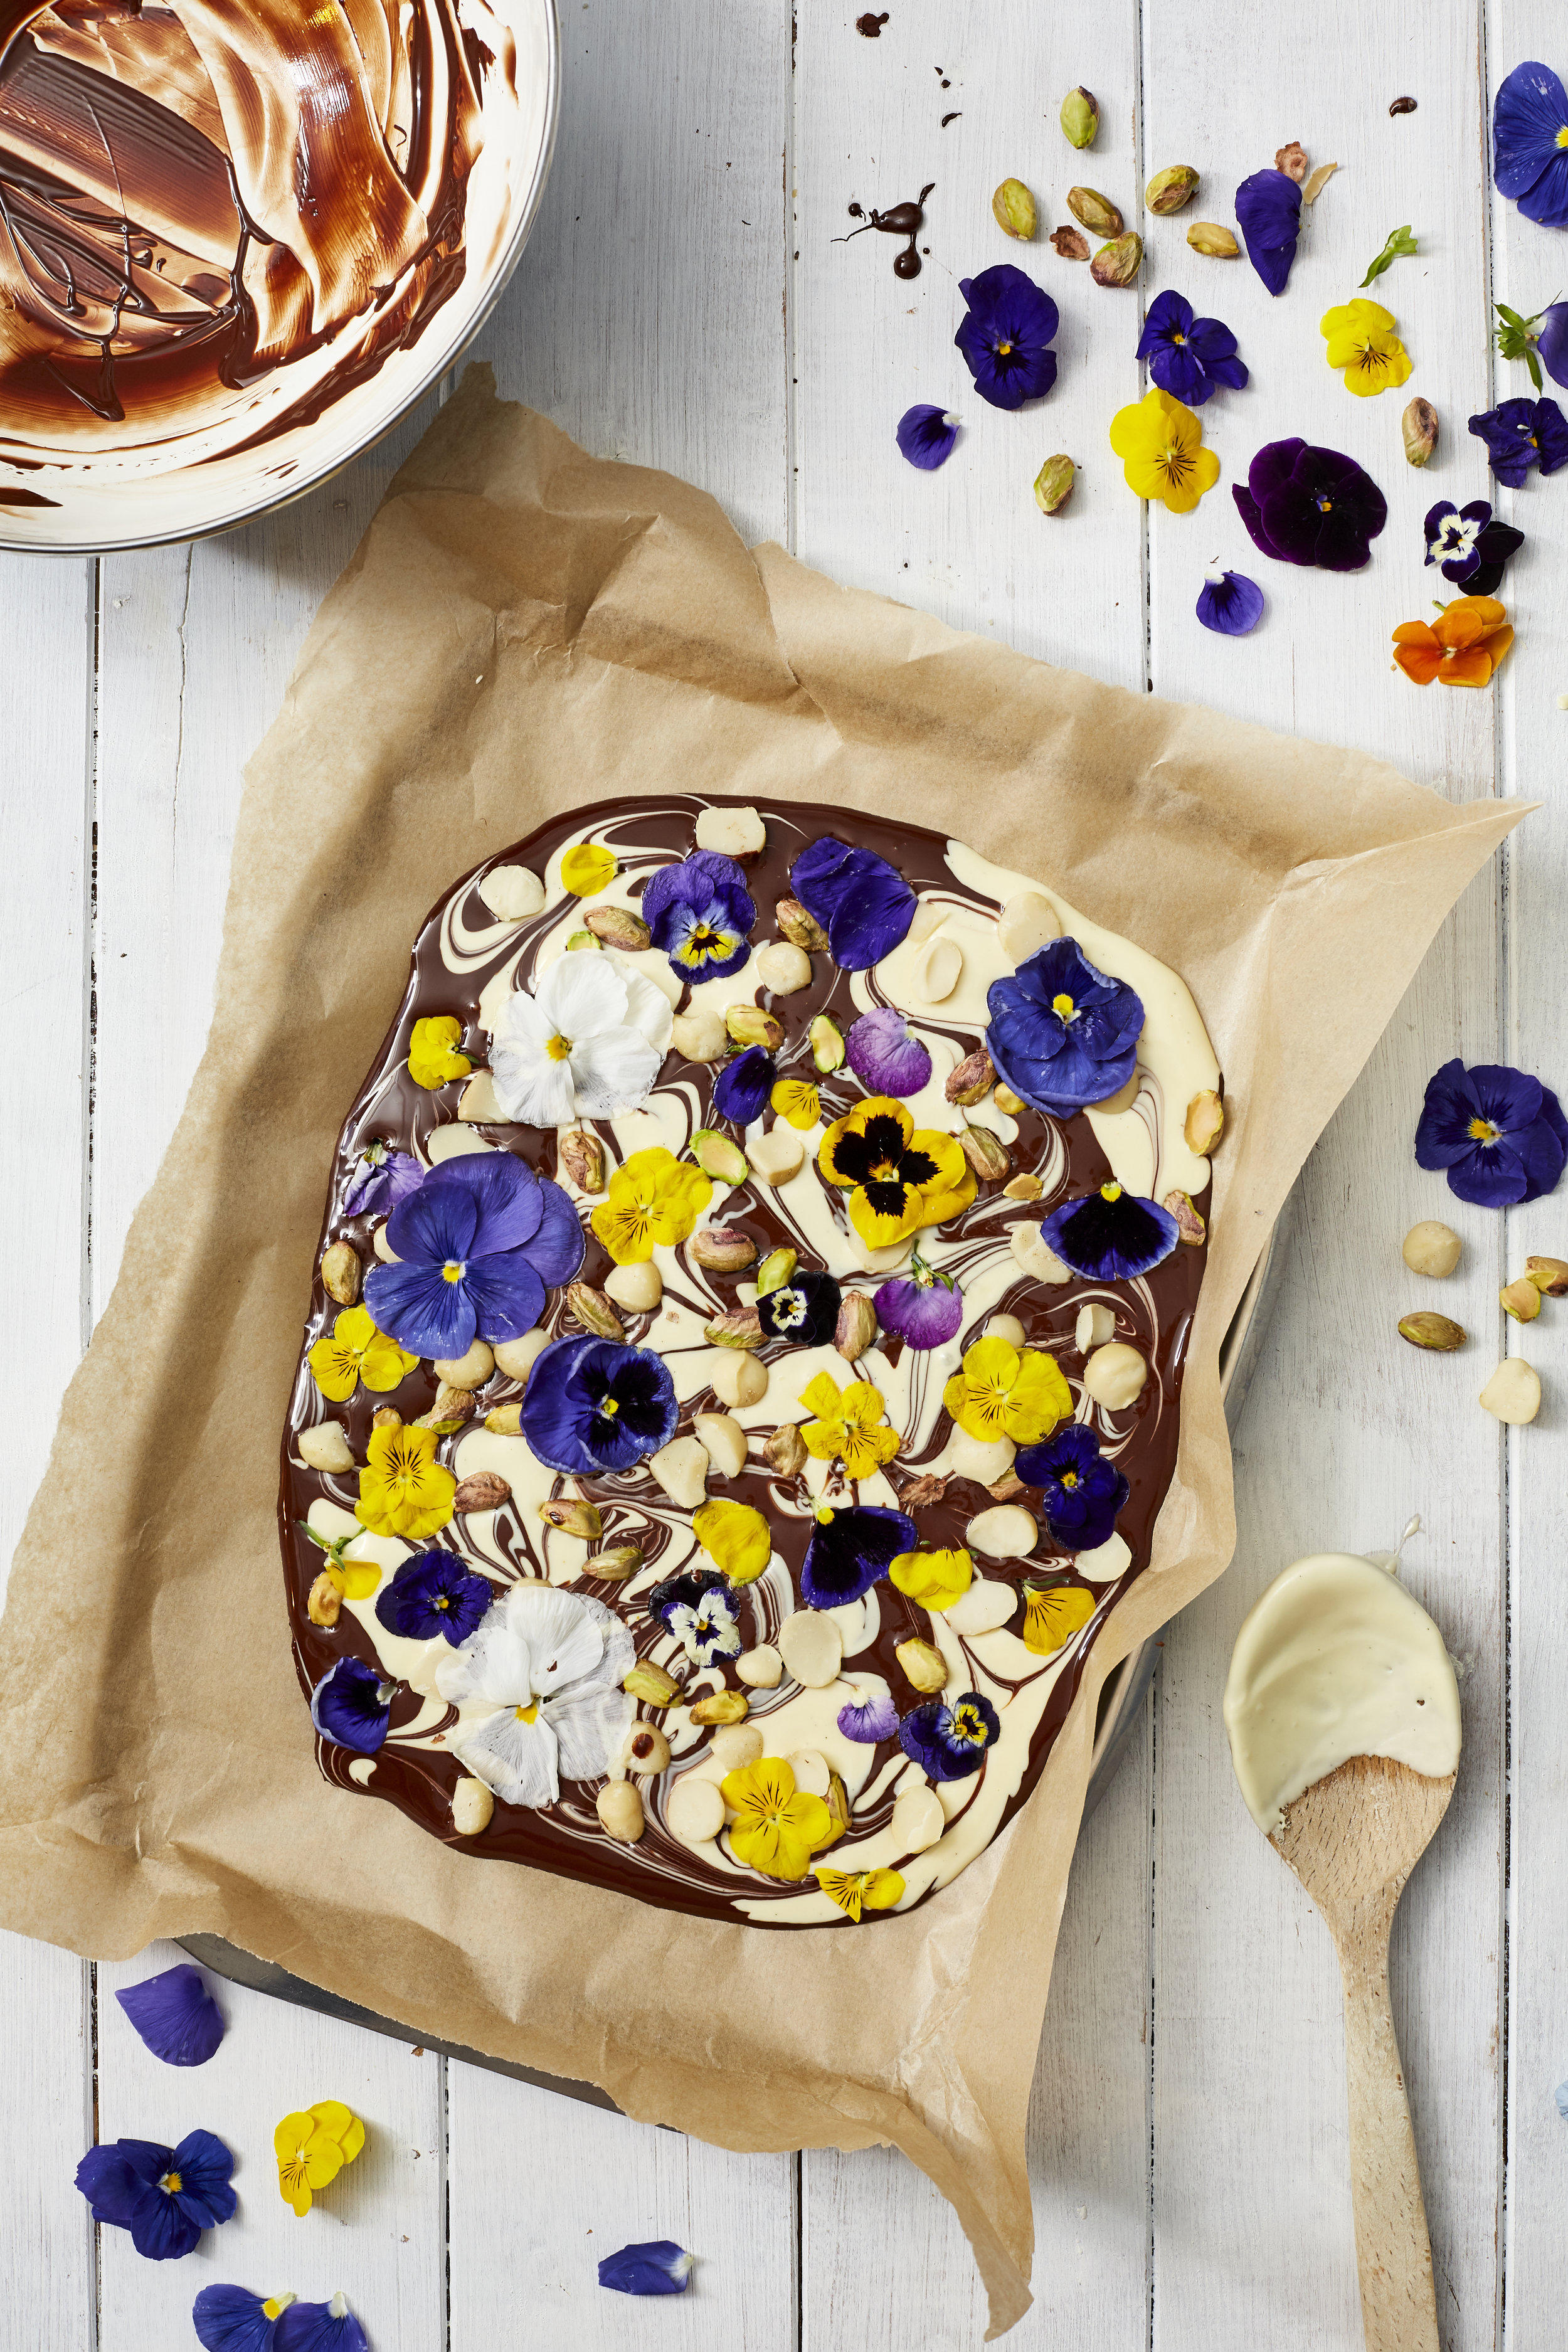 ideas for using edible flowers as featured in 91 Magazine SS18 issue